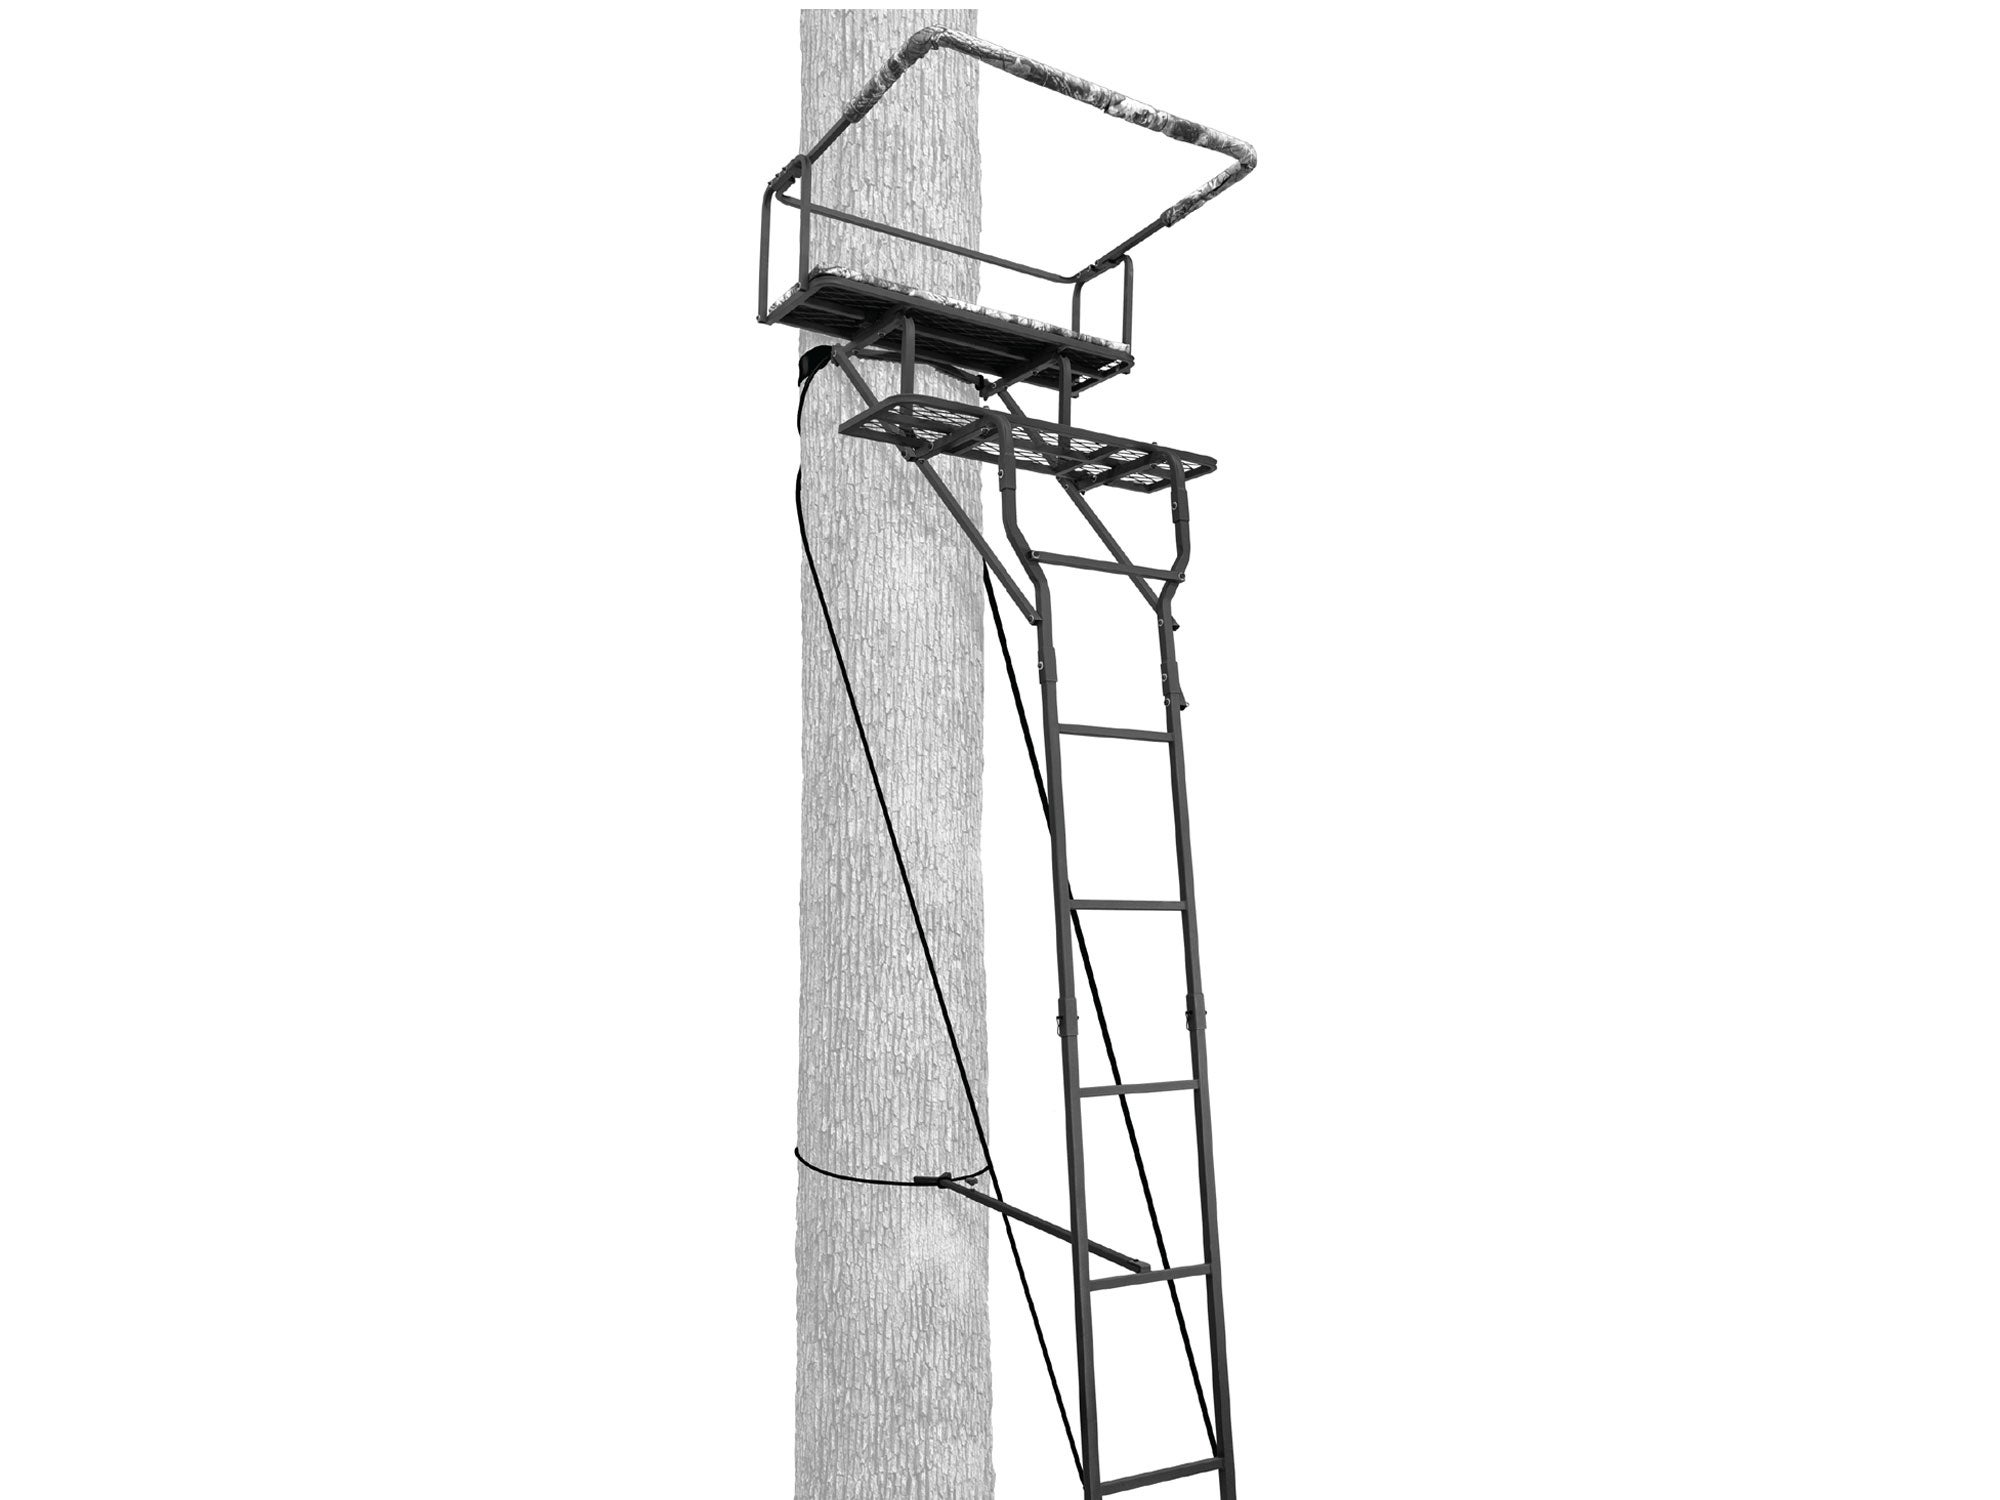 Two-man Ladderstand w/ Realtree Padded Seat